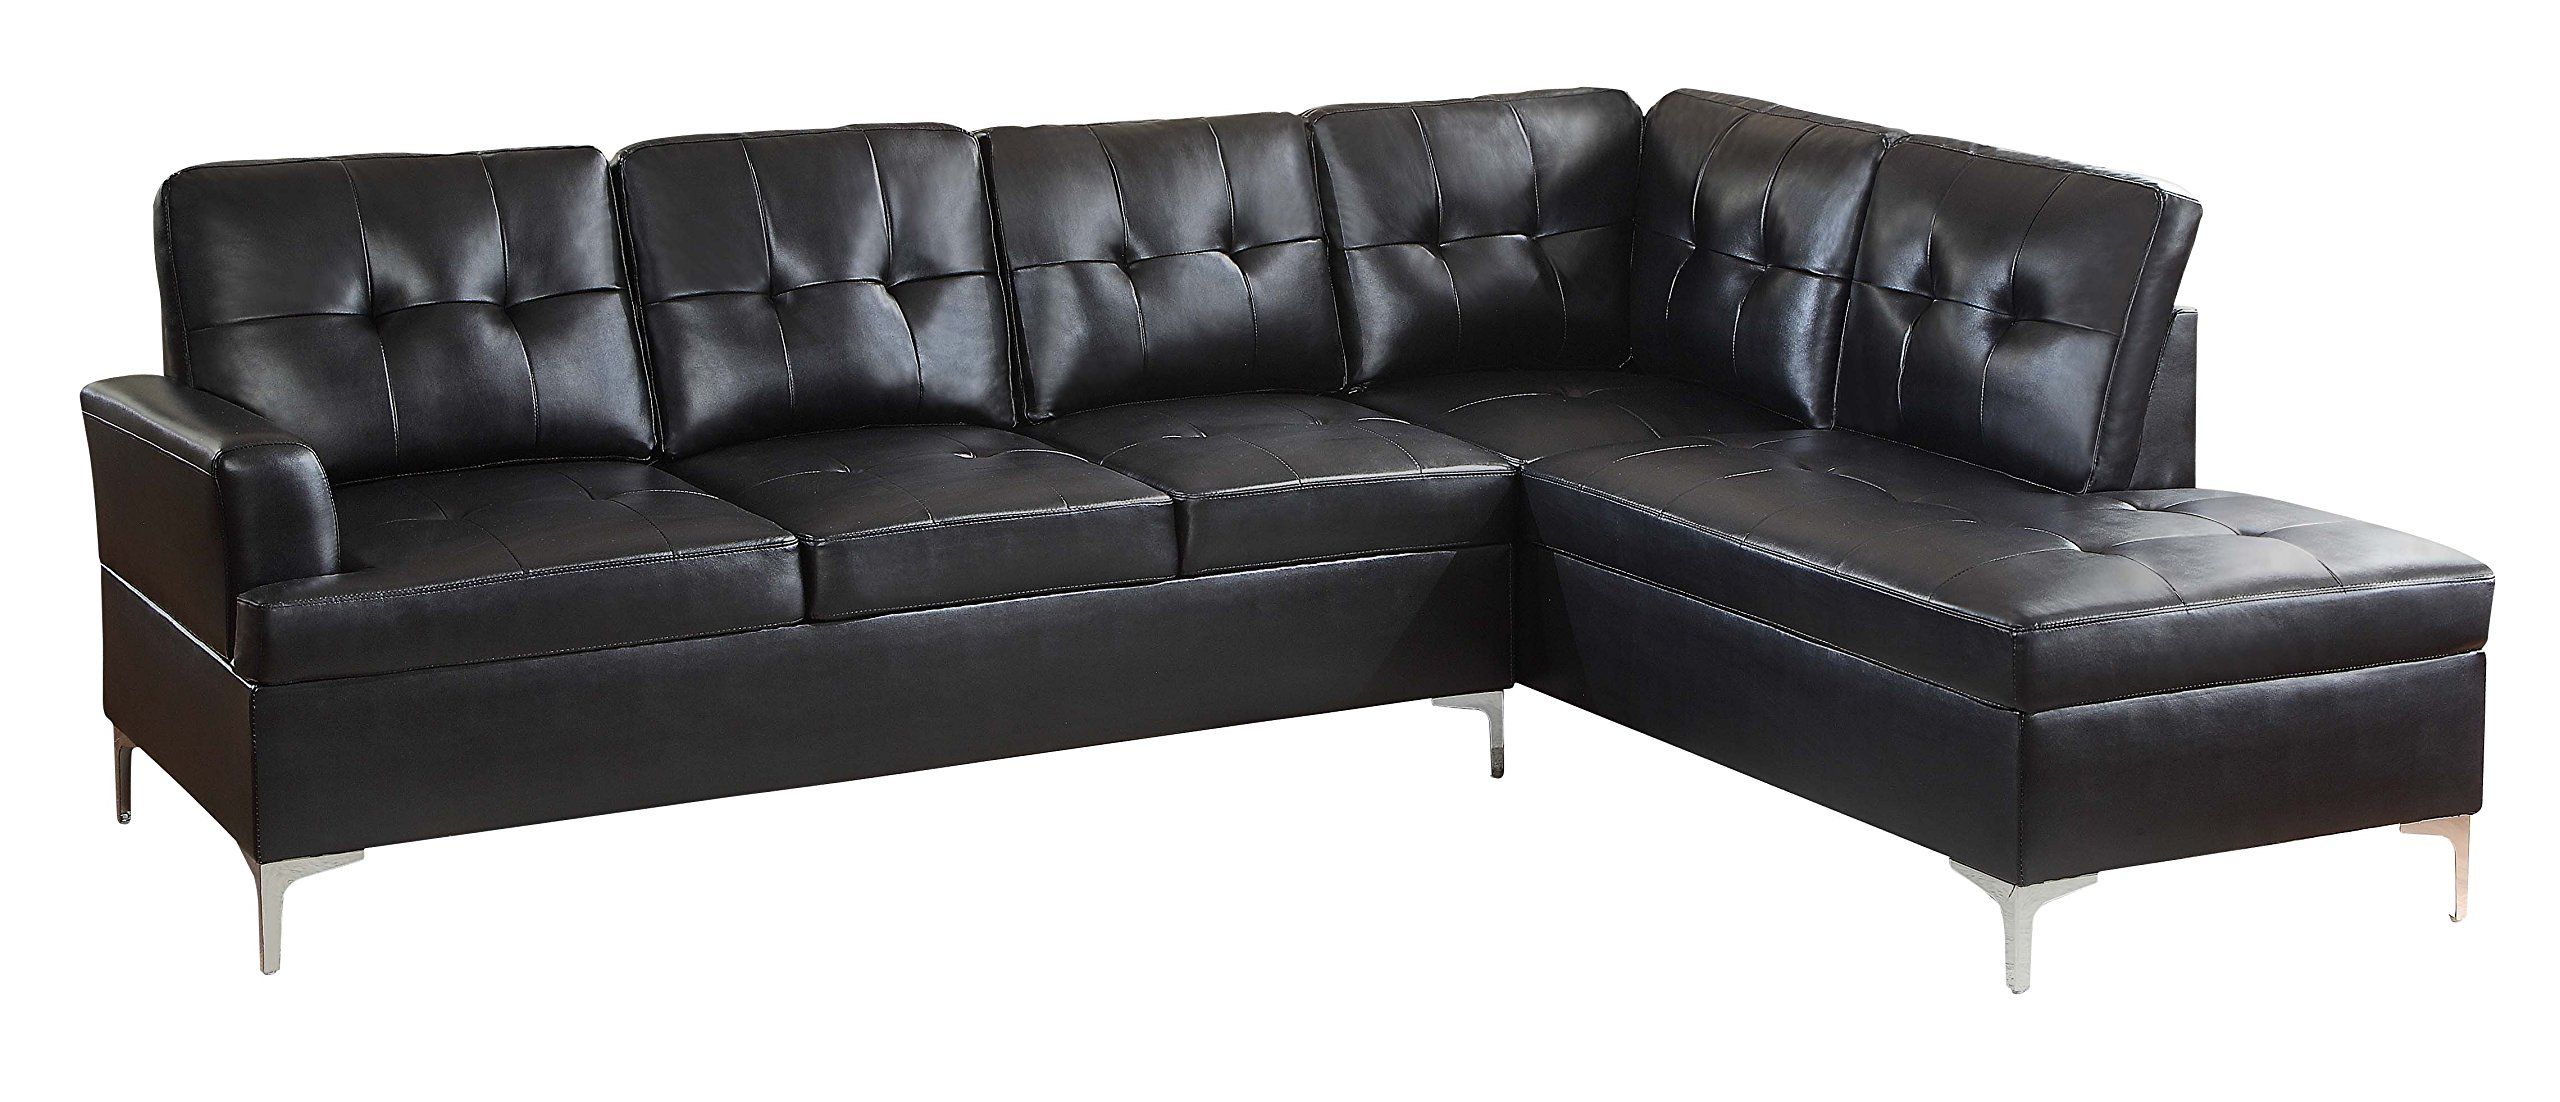 Homelegance 2 Piece Tufted Accent Sectional Sofa With Chaise Bi-Cast Vinyl, Black